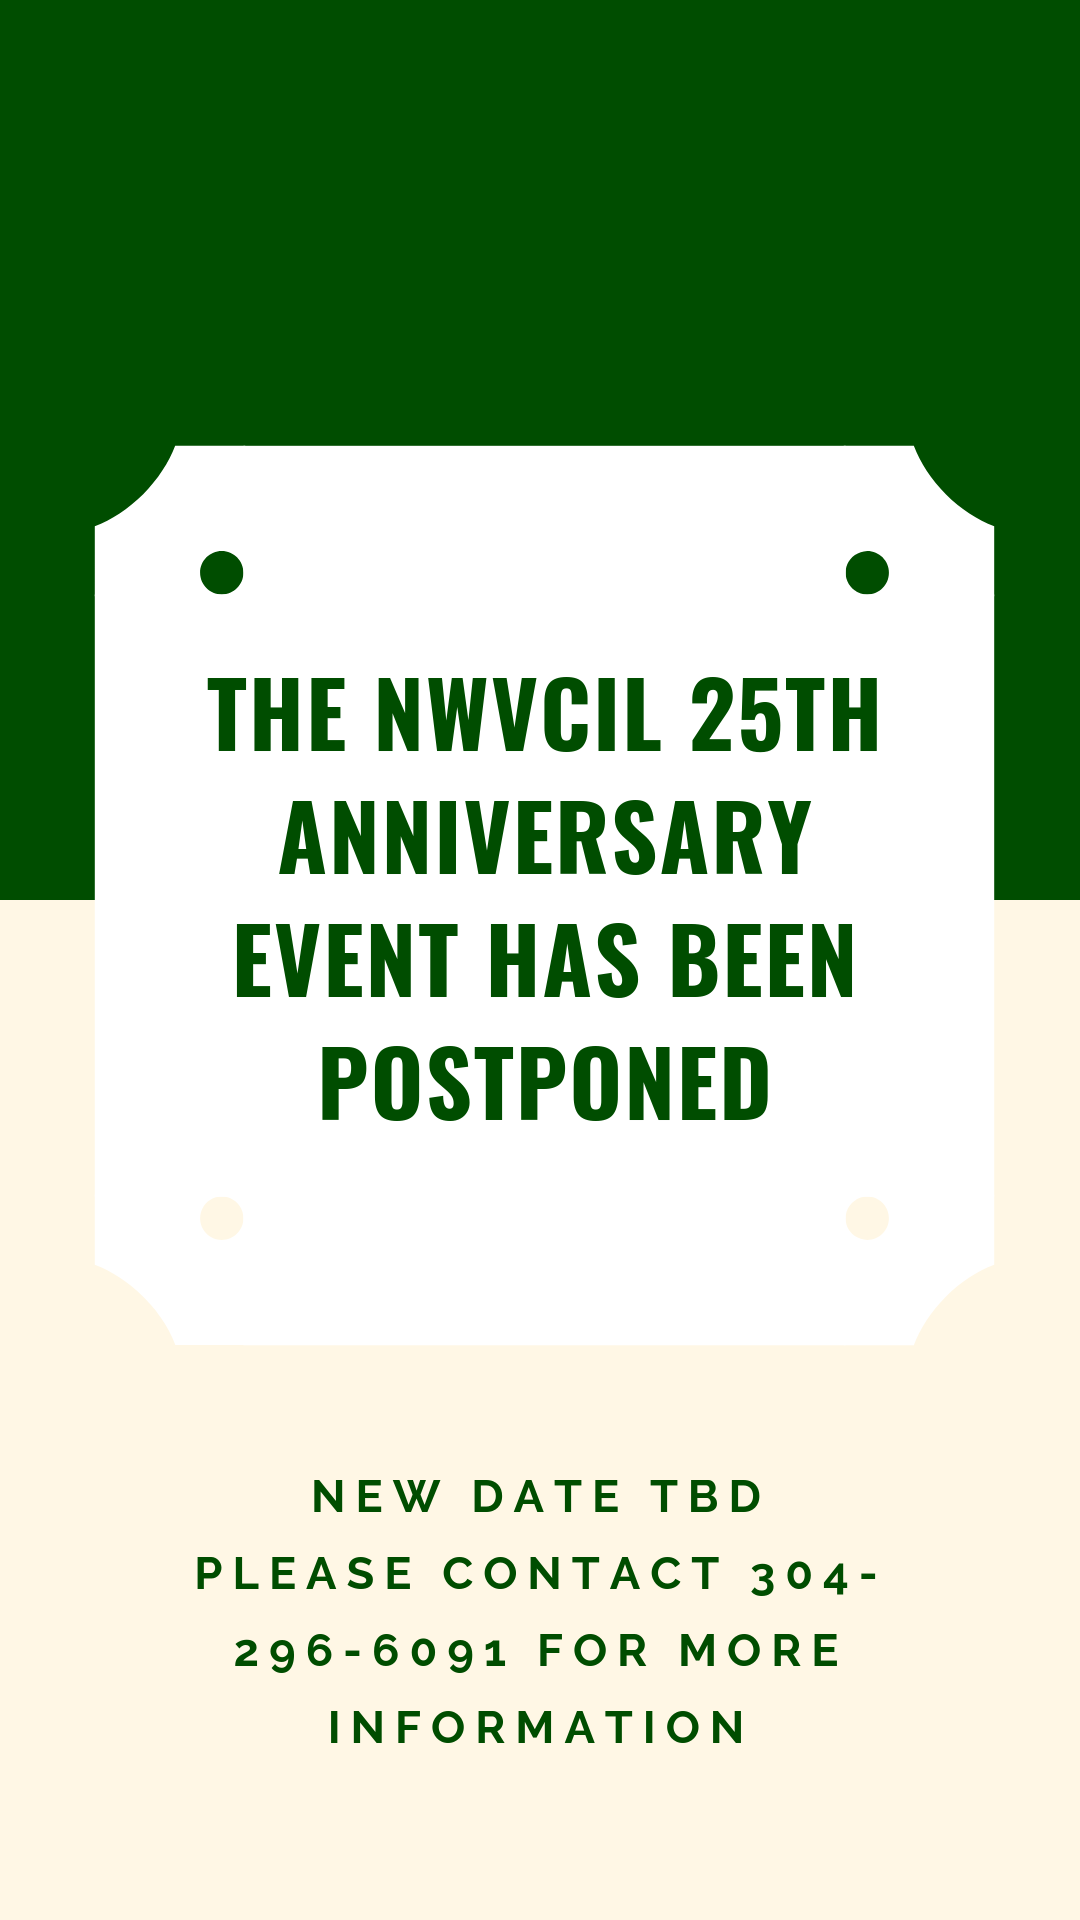 The NWVCIL 25th Anniversary Event has been postponed. New date to be determined. Please contact 304-296-6091 with questions.